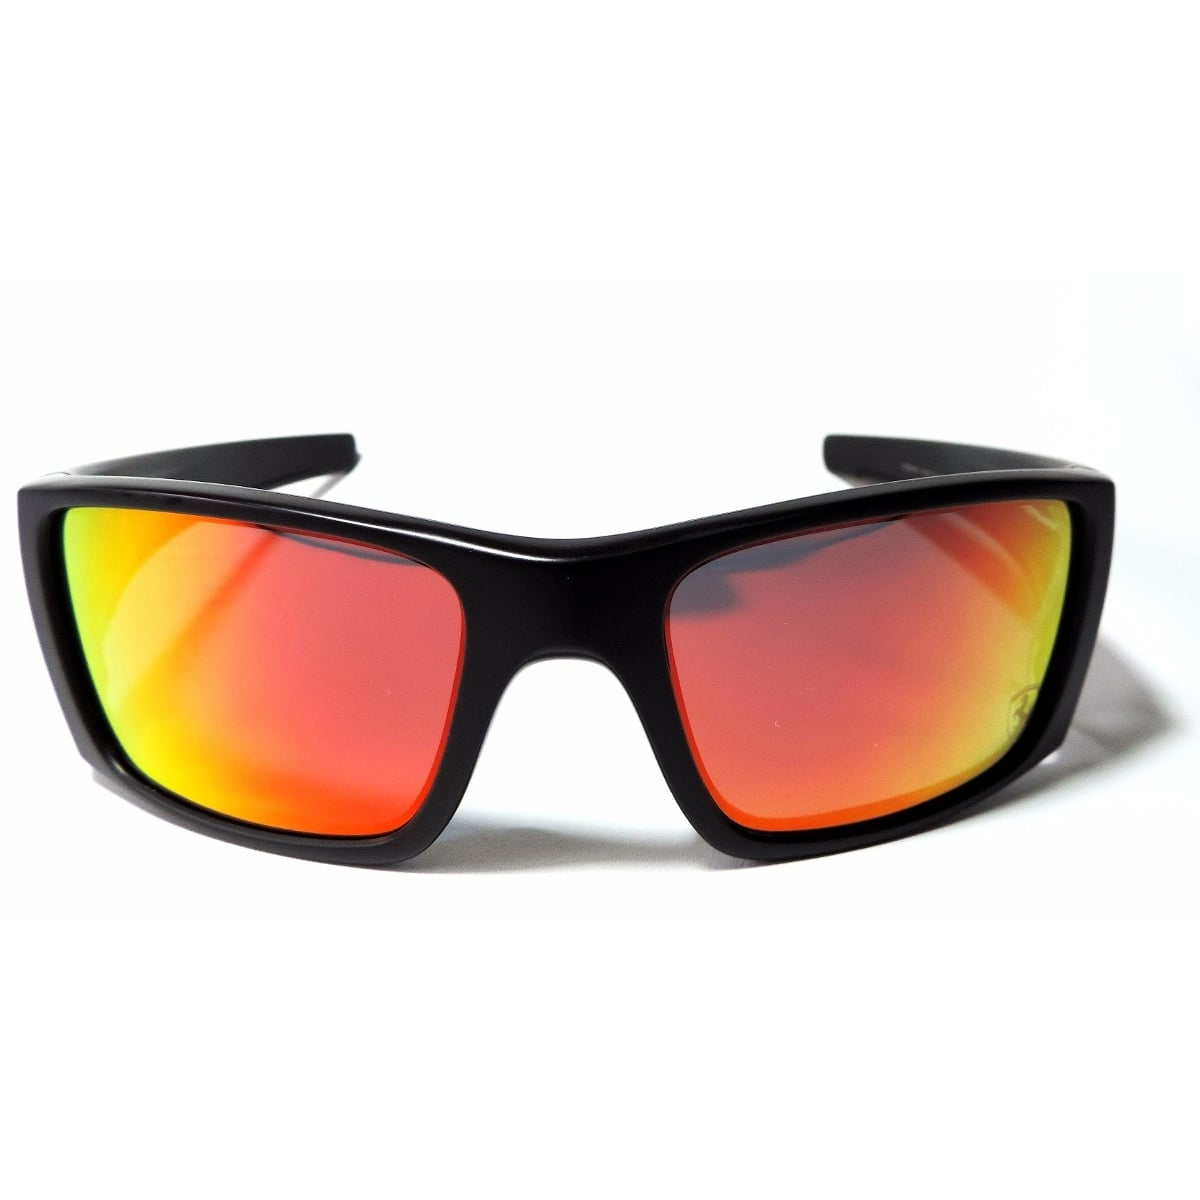 3ae8faf8fe Oakley Fuel Cell Sunglasses Amazon « Heritage Malta